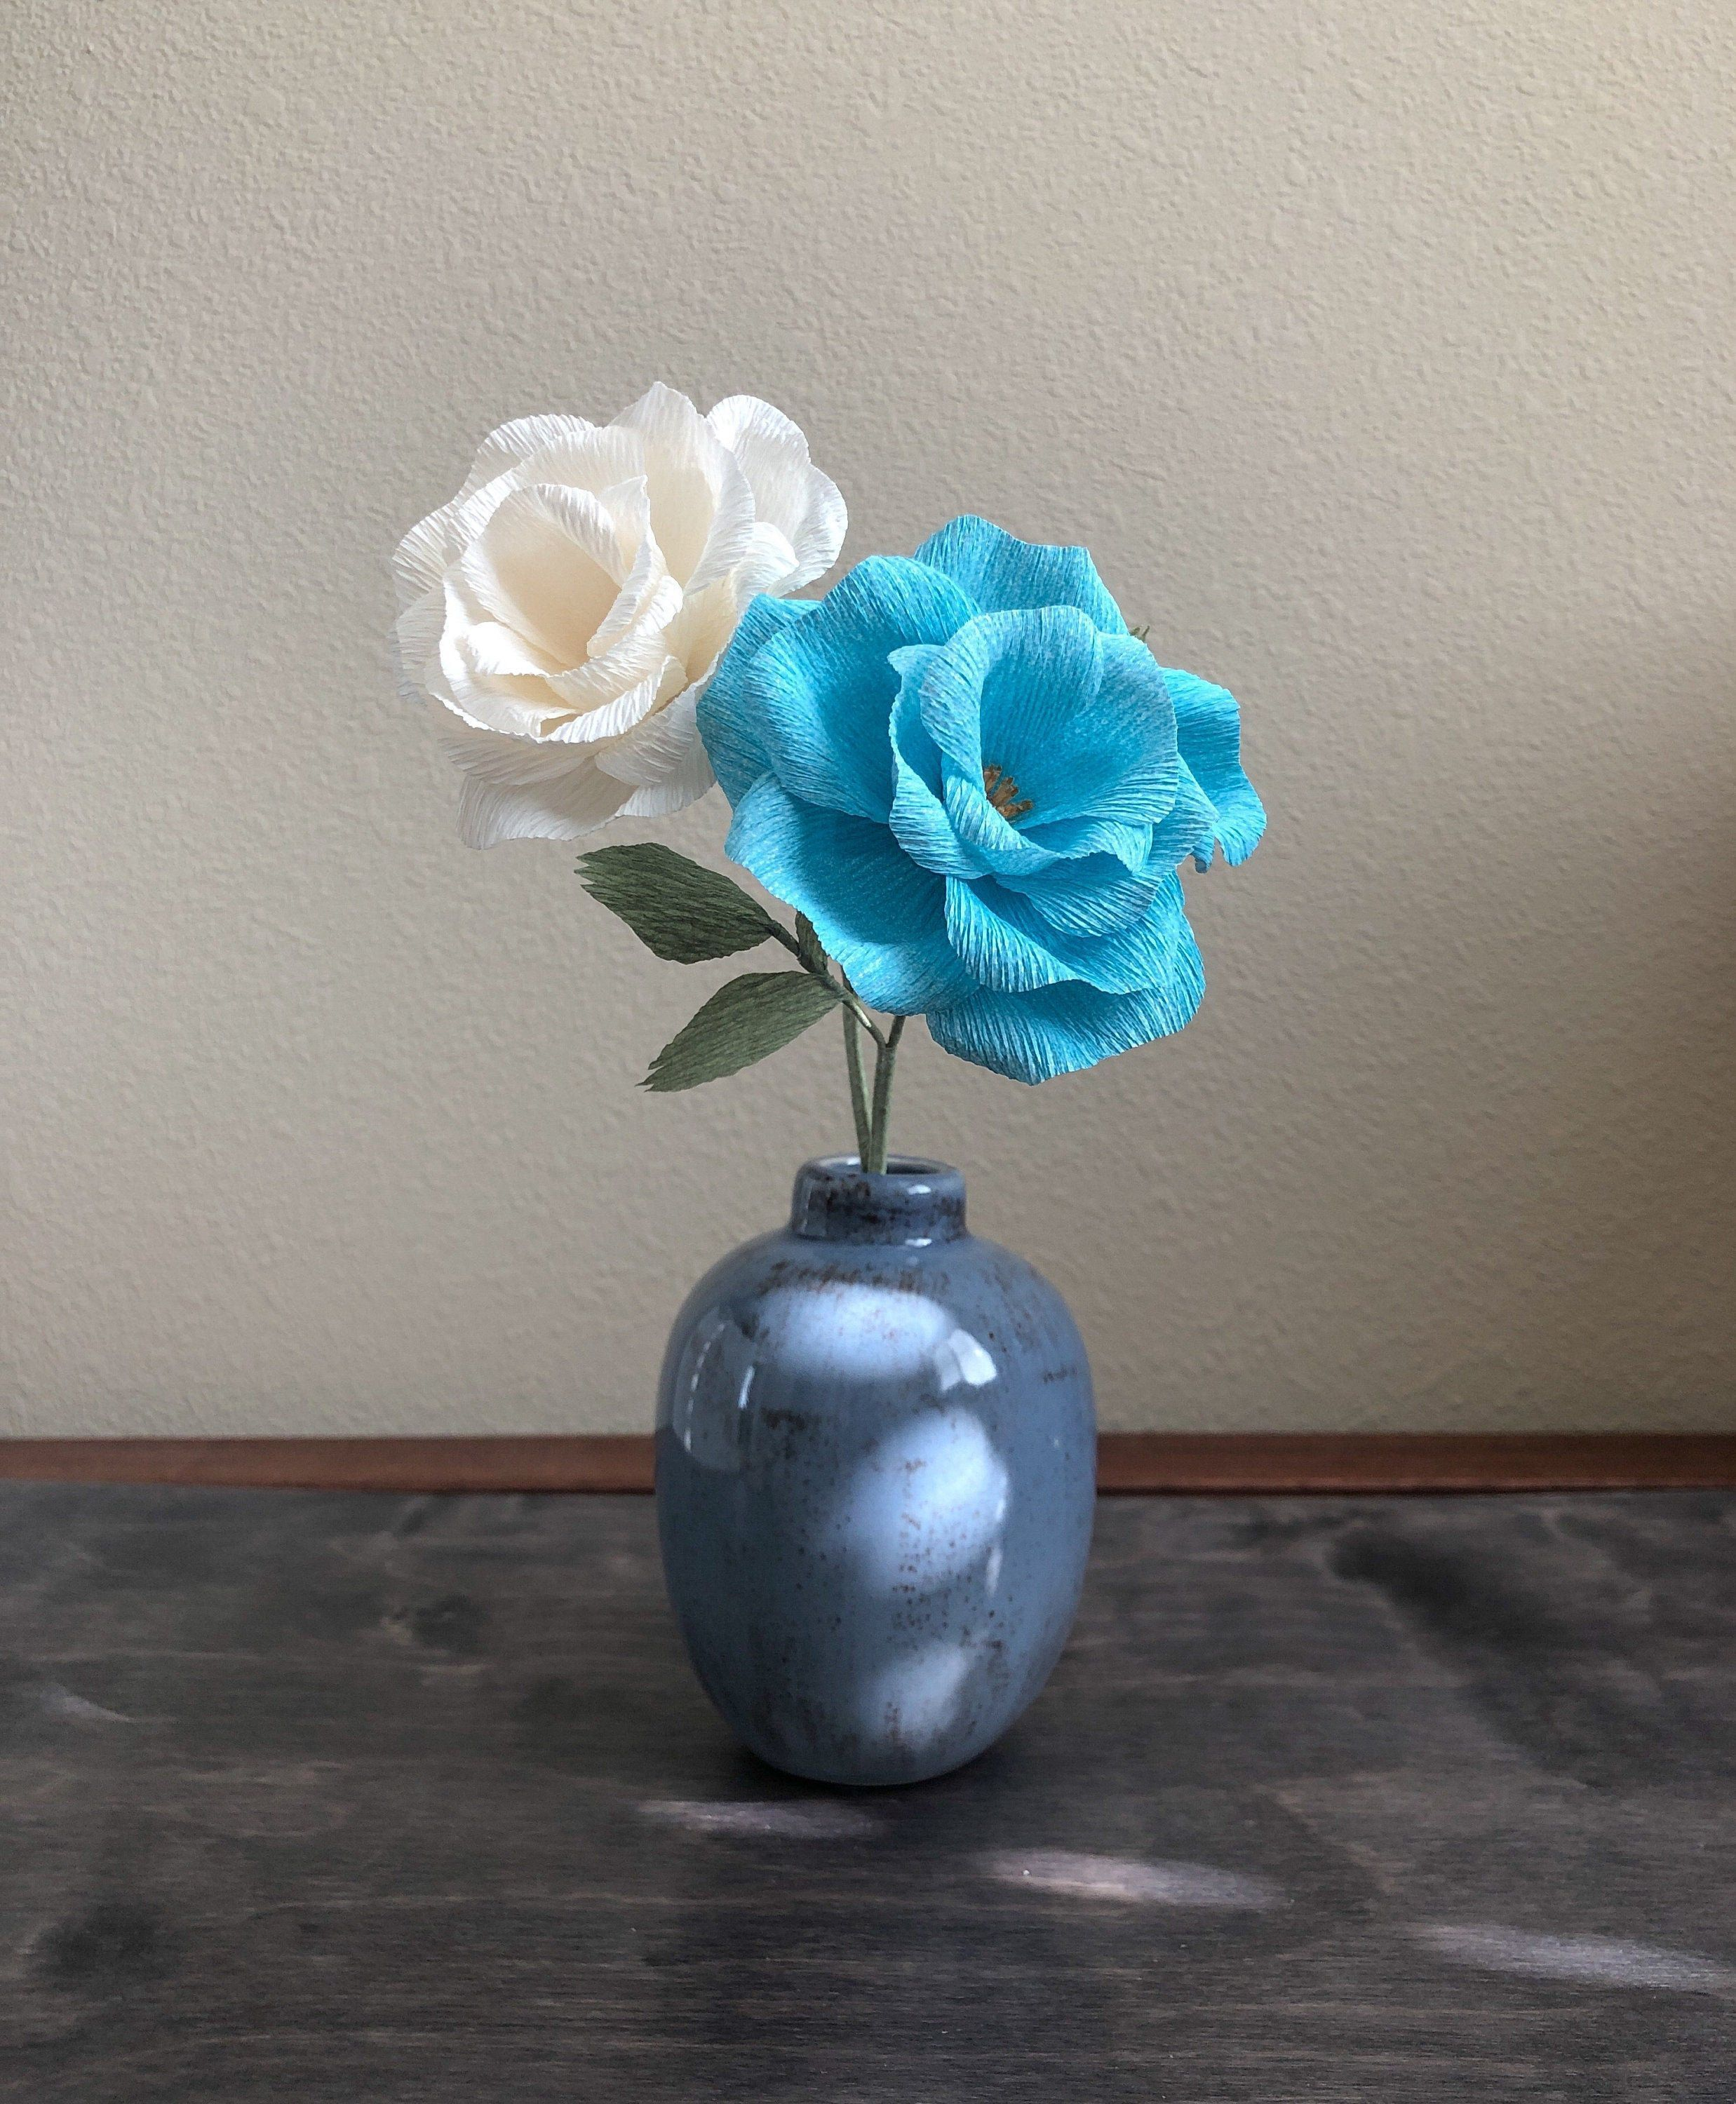 Bright blue paper rose. Crepe paper flower. Blue rose. Artificial flower. Blue flower. Rose flower. Single stem. Everlasting flower #crepepaperroses Bright blue paper rose. Crepe paper flower. Blue rose. Artificial flower. Blue flower. Rose flower. Single stem. Everlasting flower. by heygetpaper on Etsy #crepepaperroses Bright blue paper rose. Crepe paper flower. Blue rose. Artificial flower. Blue flower. Rose flower. Single stem. Everlasting flower #crepepaperroses Bright blue paper rose. Crepe #crepepaperroses